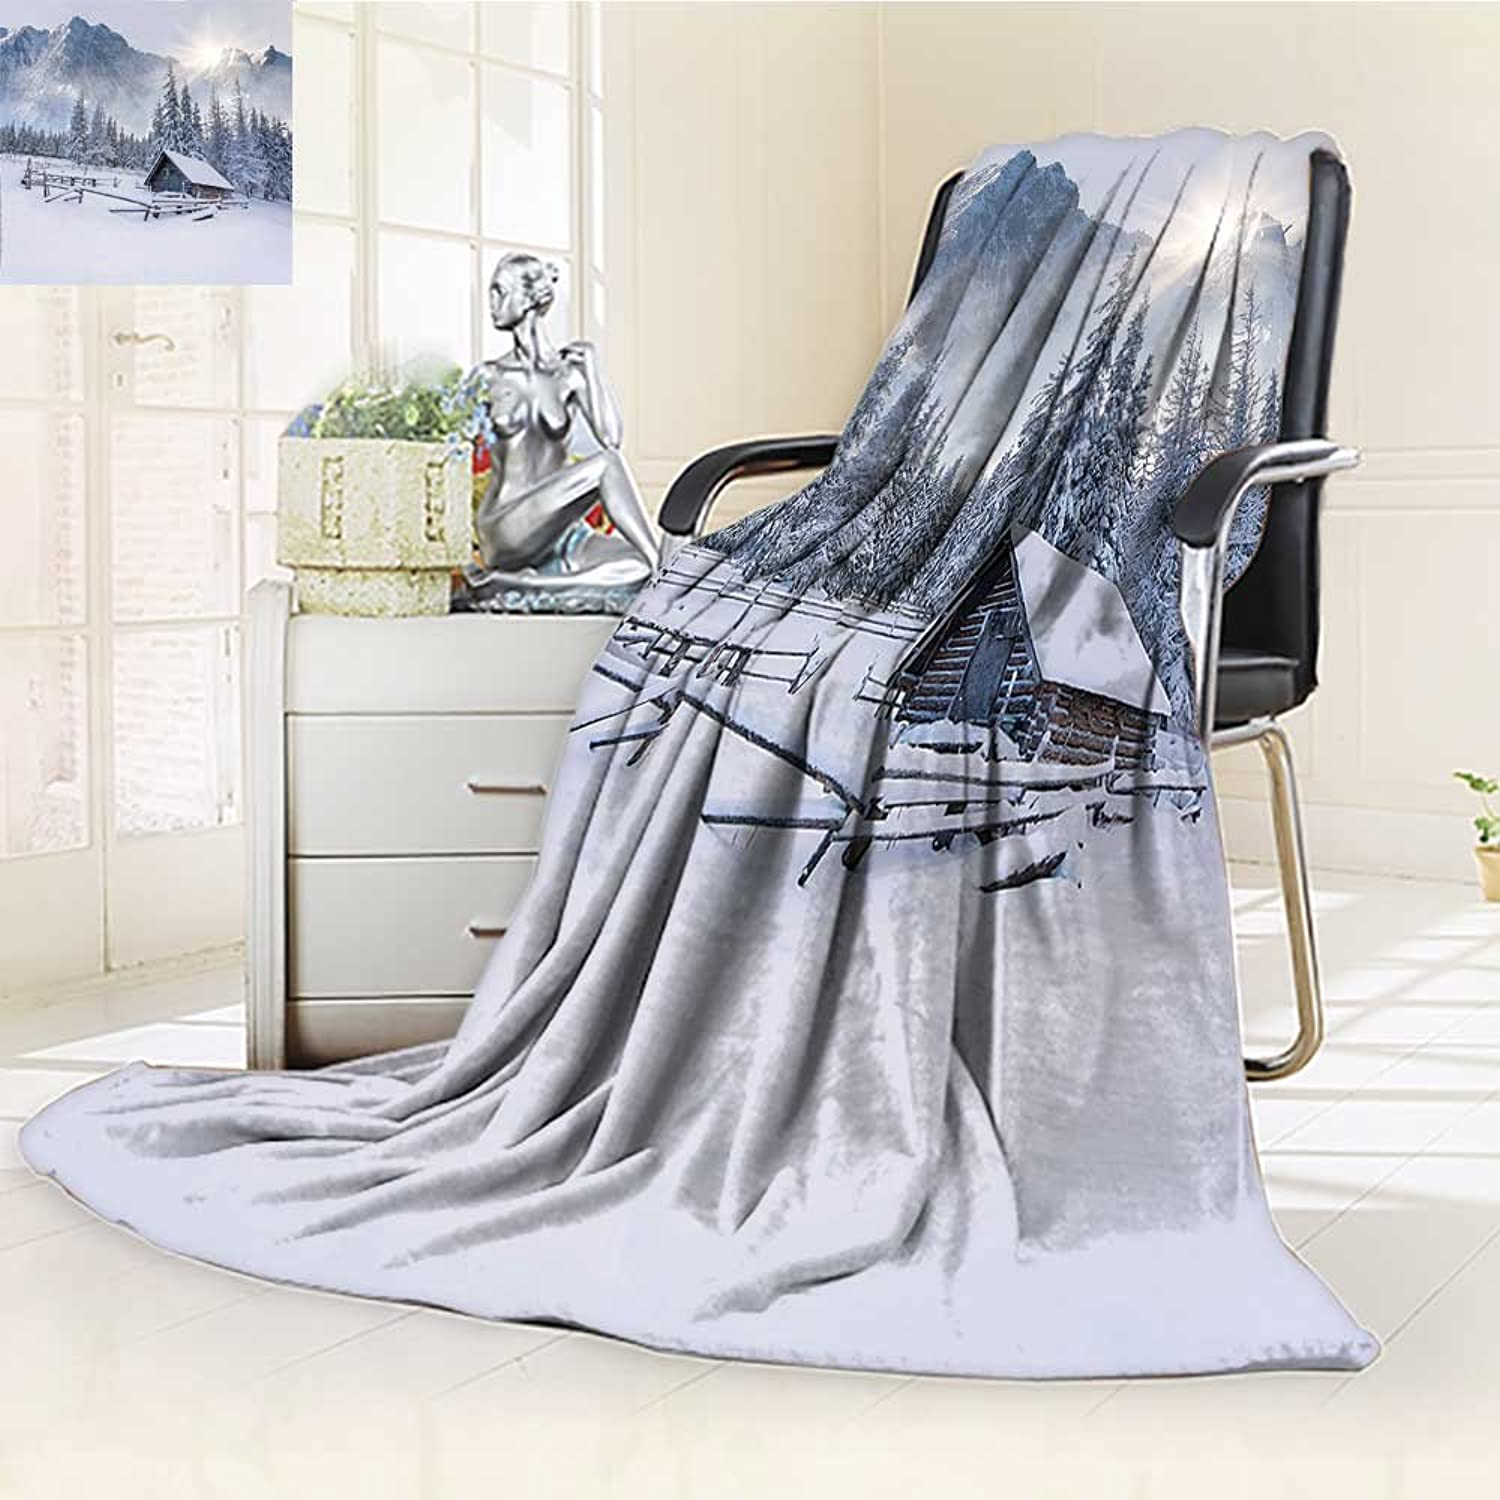 YOYI-HOME Throw Duplex Printed Blanket by The Mountain in The Winter Season Cold Times in Rural Nature Scene Photo White Velvet Plush Throw Blanket  W59 x H39.5